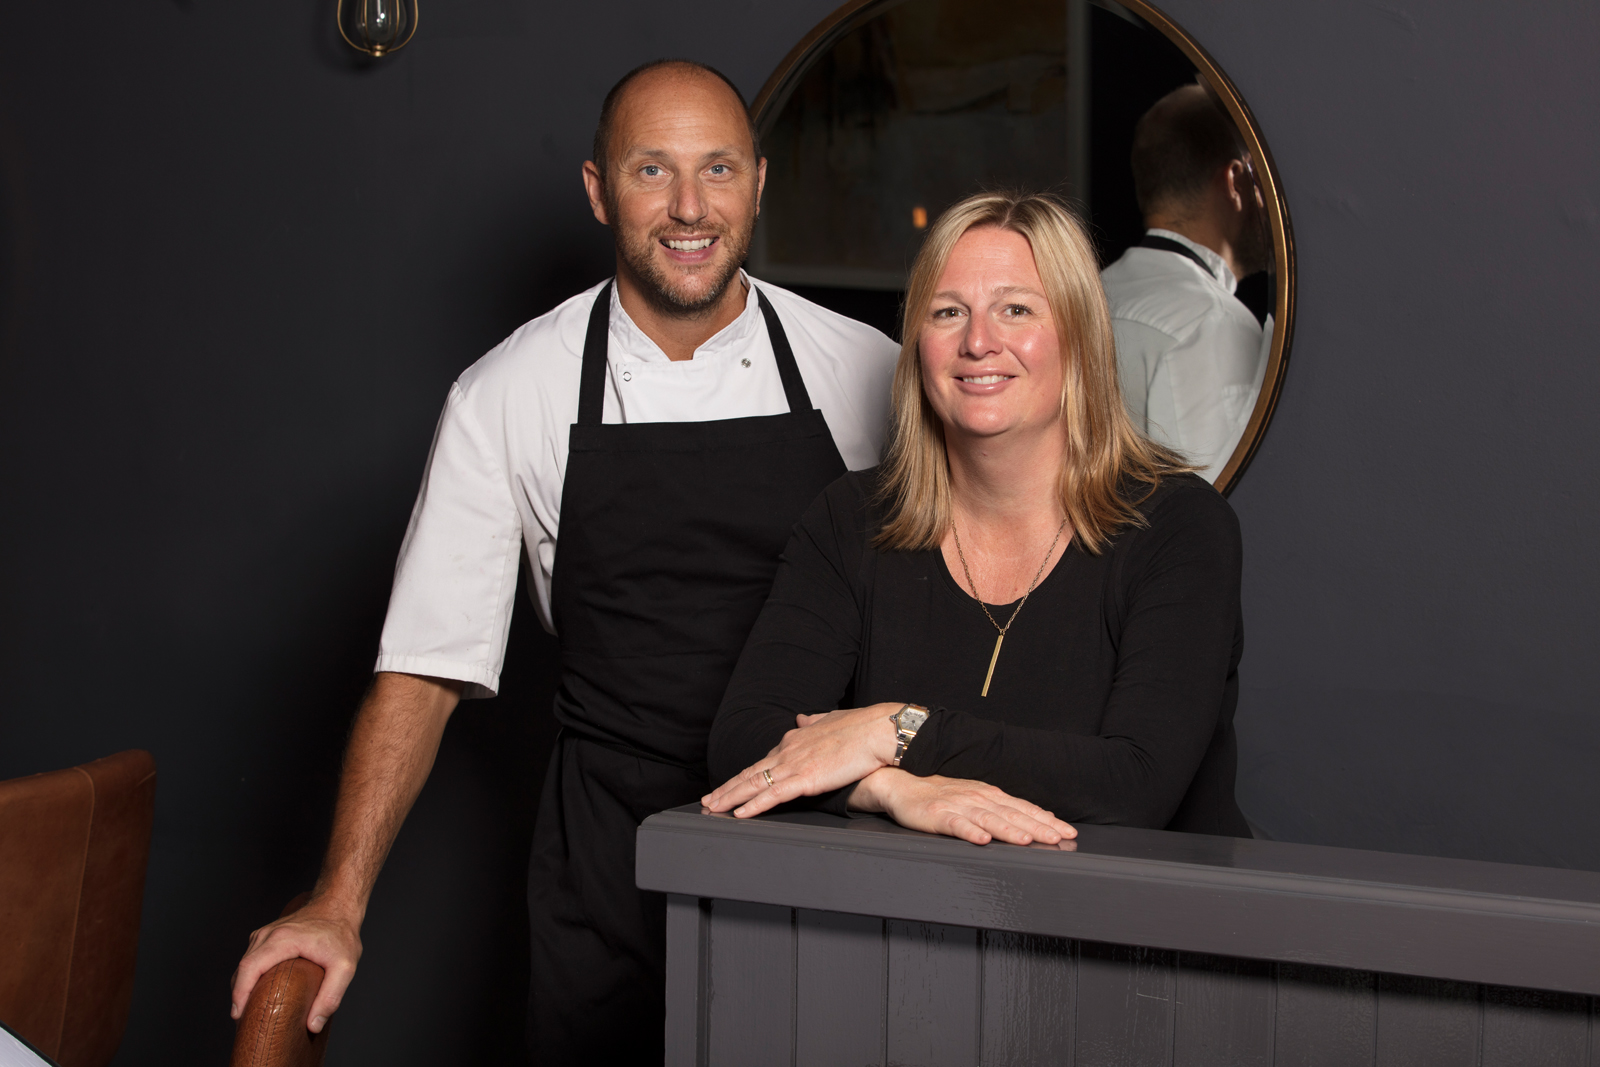 The Wee Restaurant Craig and Vikki Wood 2.jpg